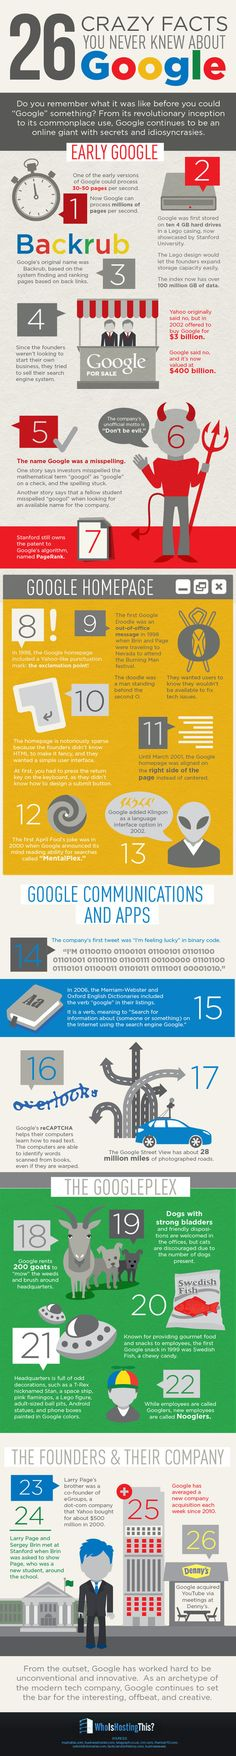 26 Interesting & Surprising Facts about Google #Infographic via @malekalby | Great Infographics | Scoop.it